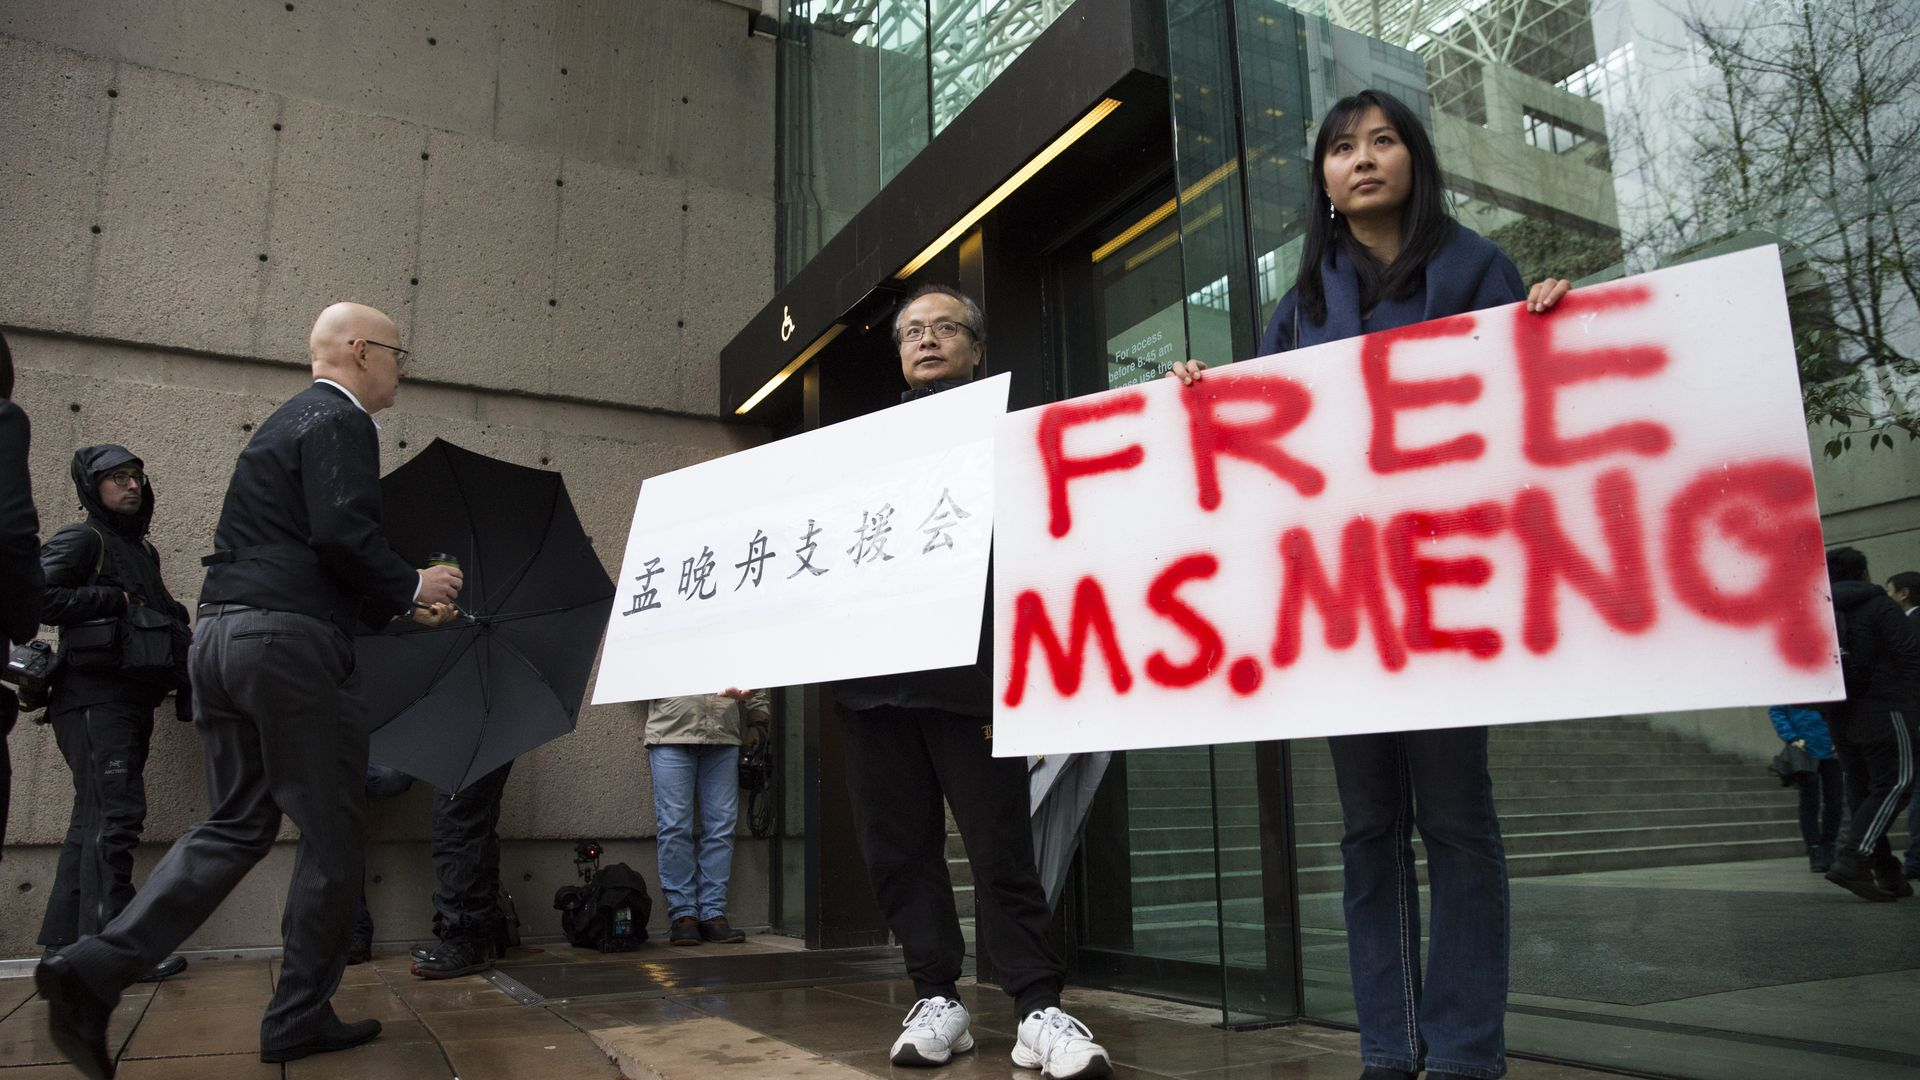 Protesters holding Free Meng signs.